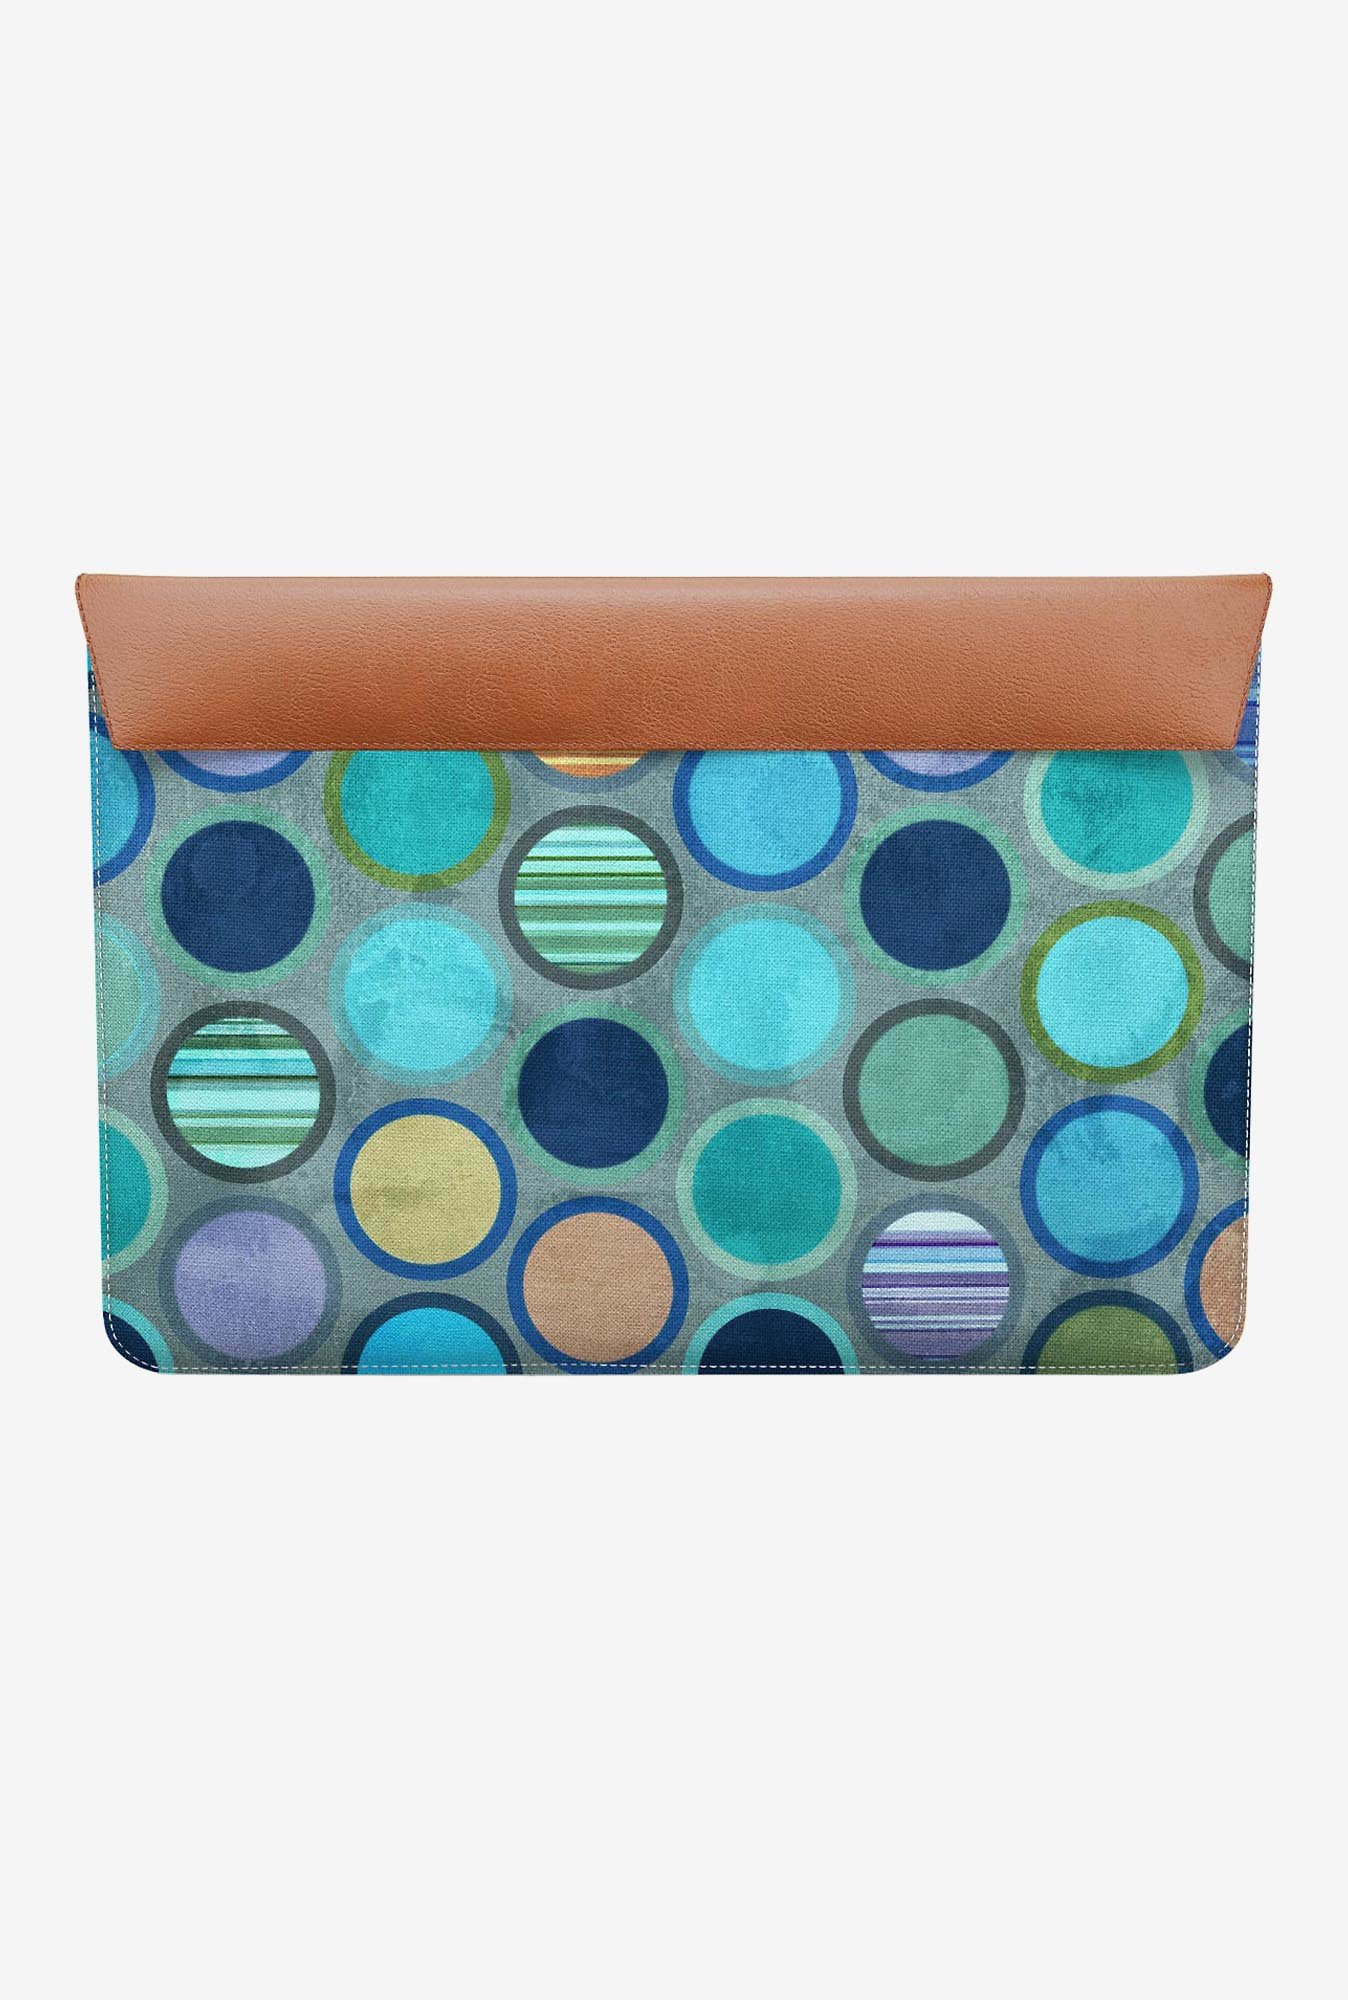 "DailyObjects Paint Pots MacBook Pro 15"" Envelope Sleeve"